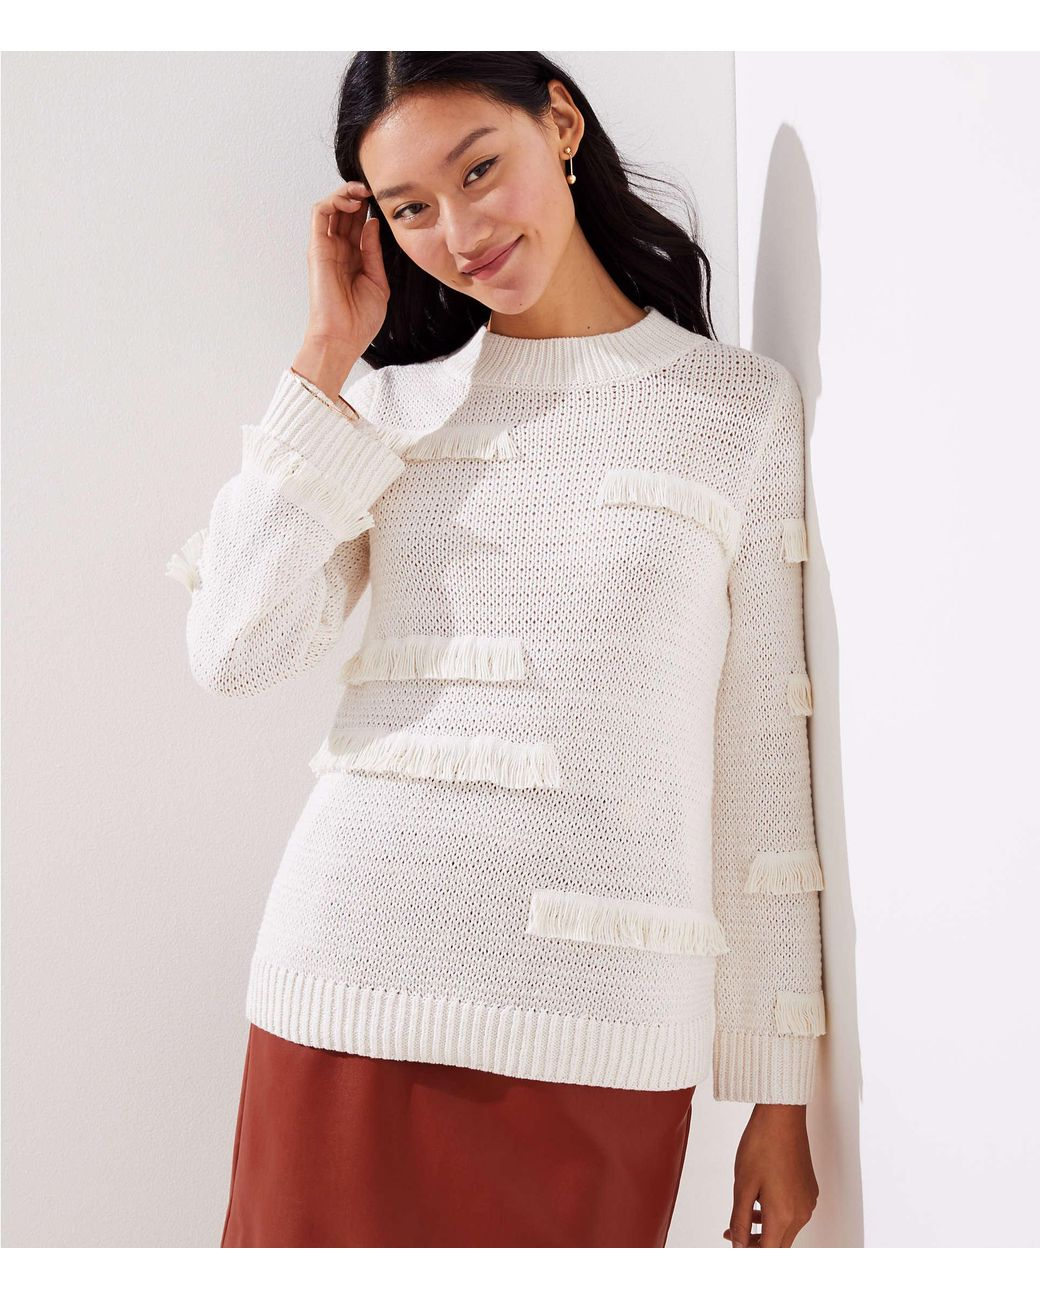 f36244d954fb7b LOFT Abstract Fringe Sweater in White - Lyst